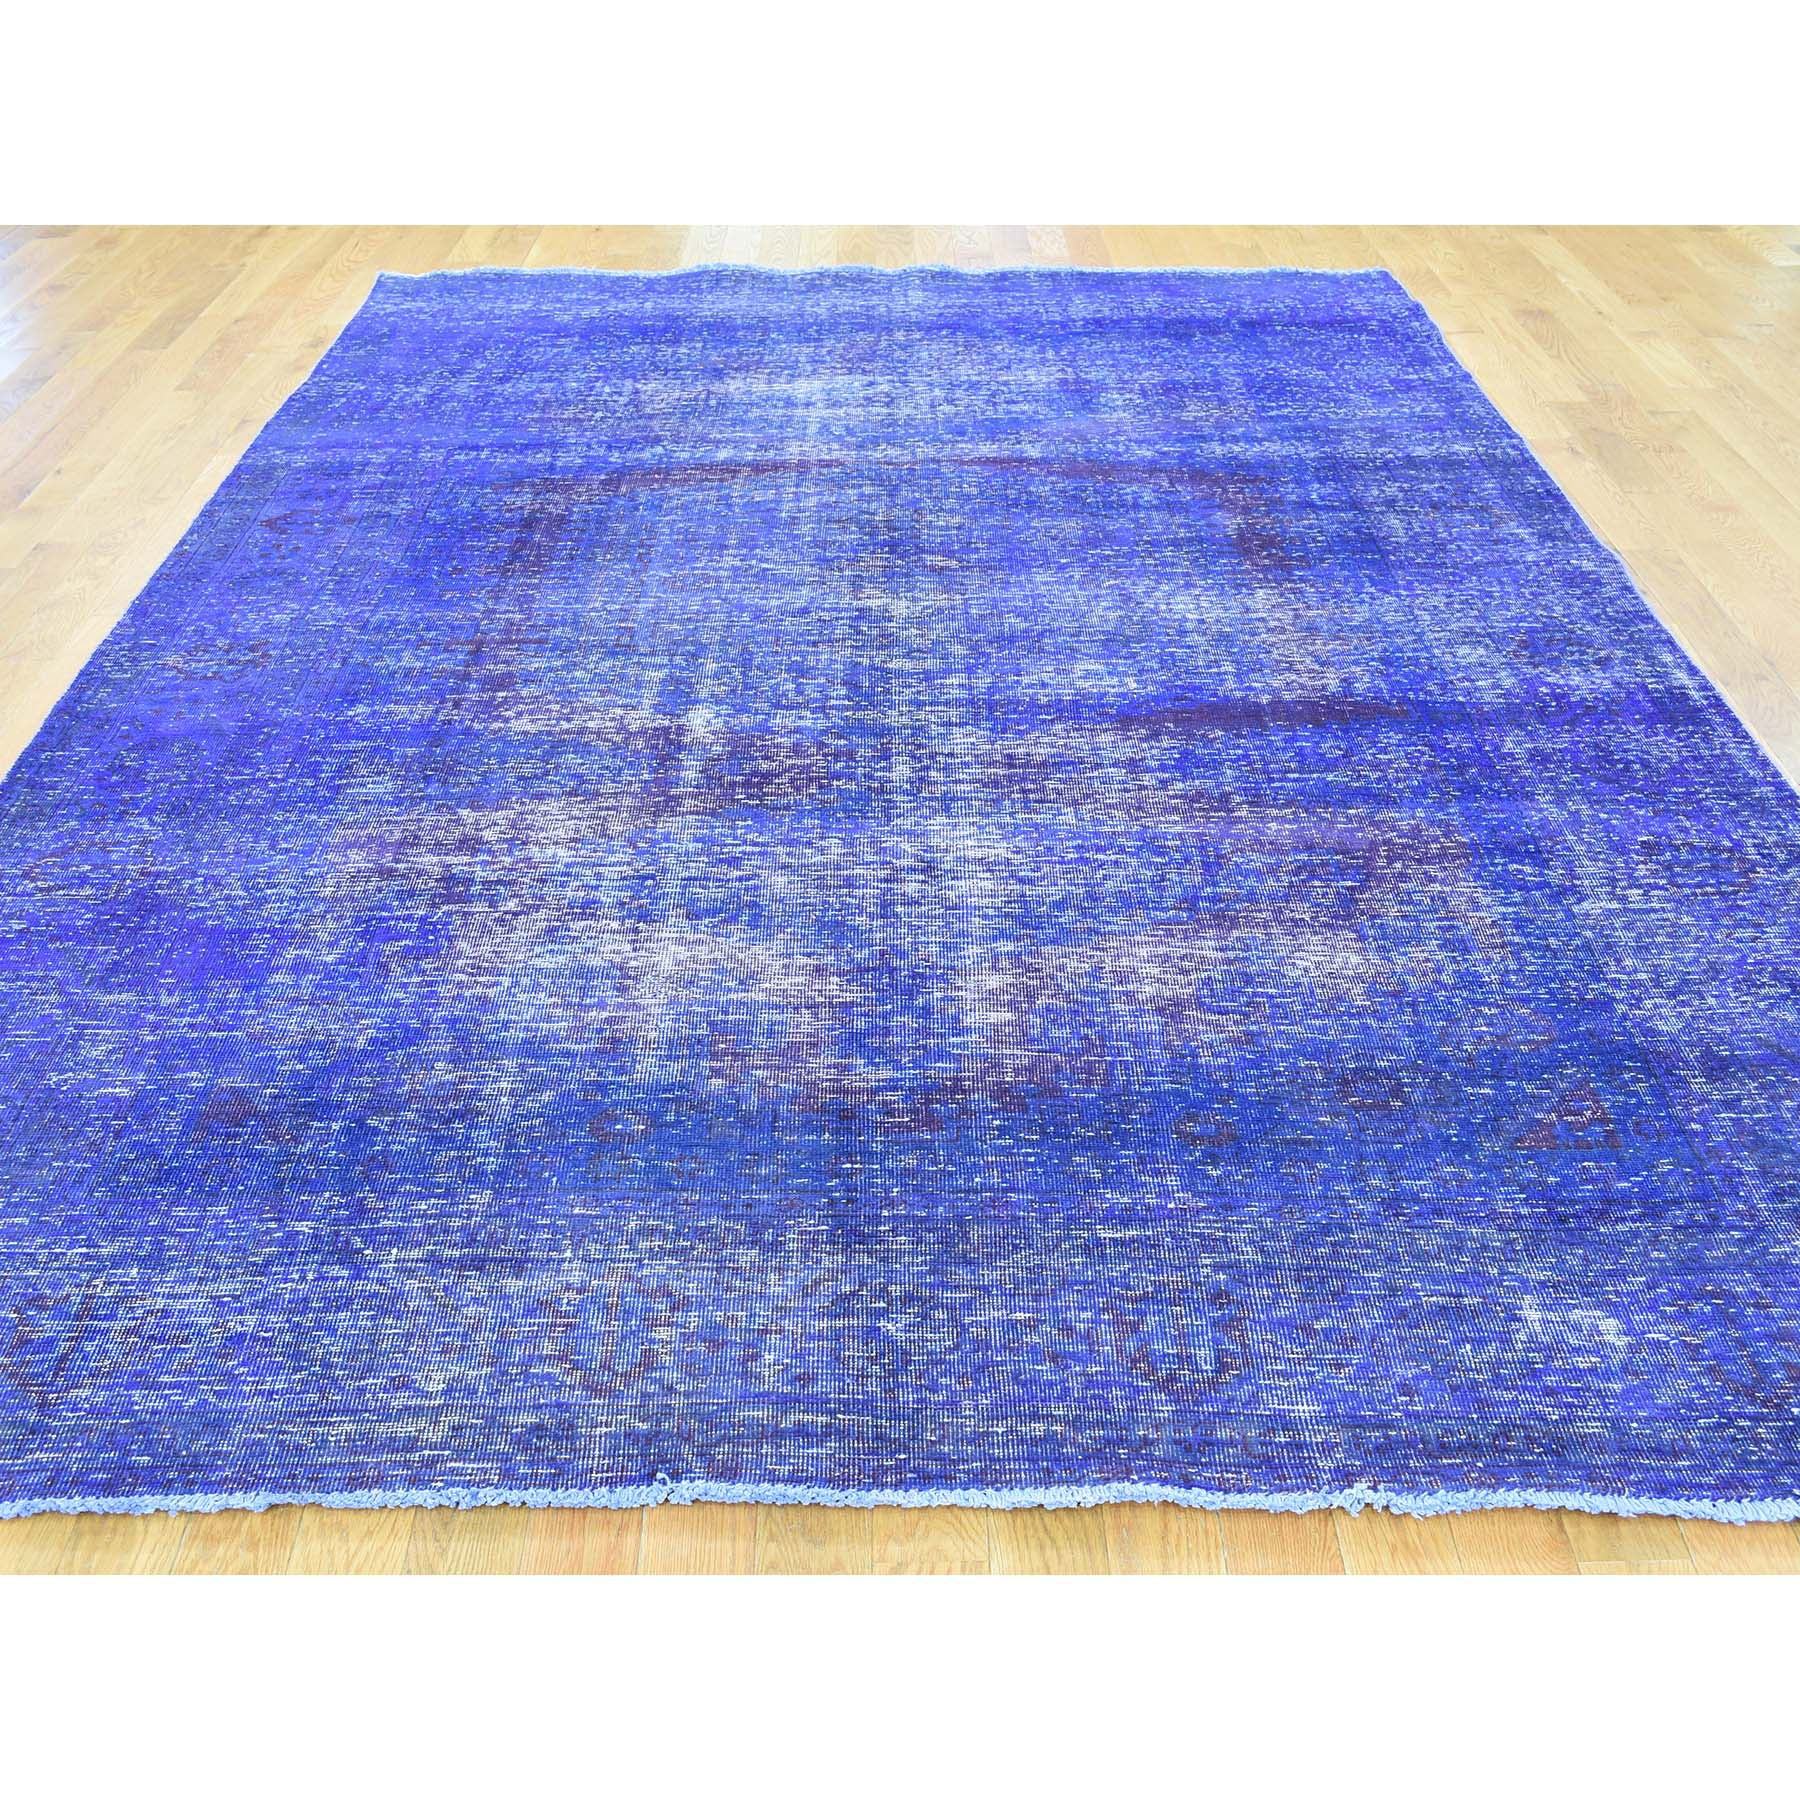 "Handmade Overdyed & Vintage Rectangle Rug > Design# SH30428 > Size: 6'-10"" x 10'-1"" [ONLINE ONLY]"